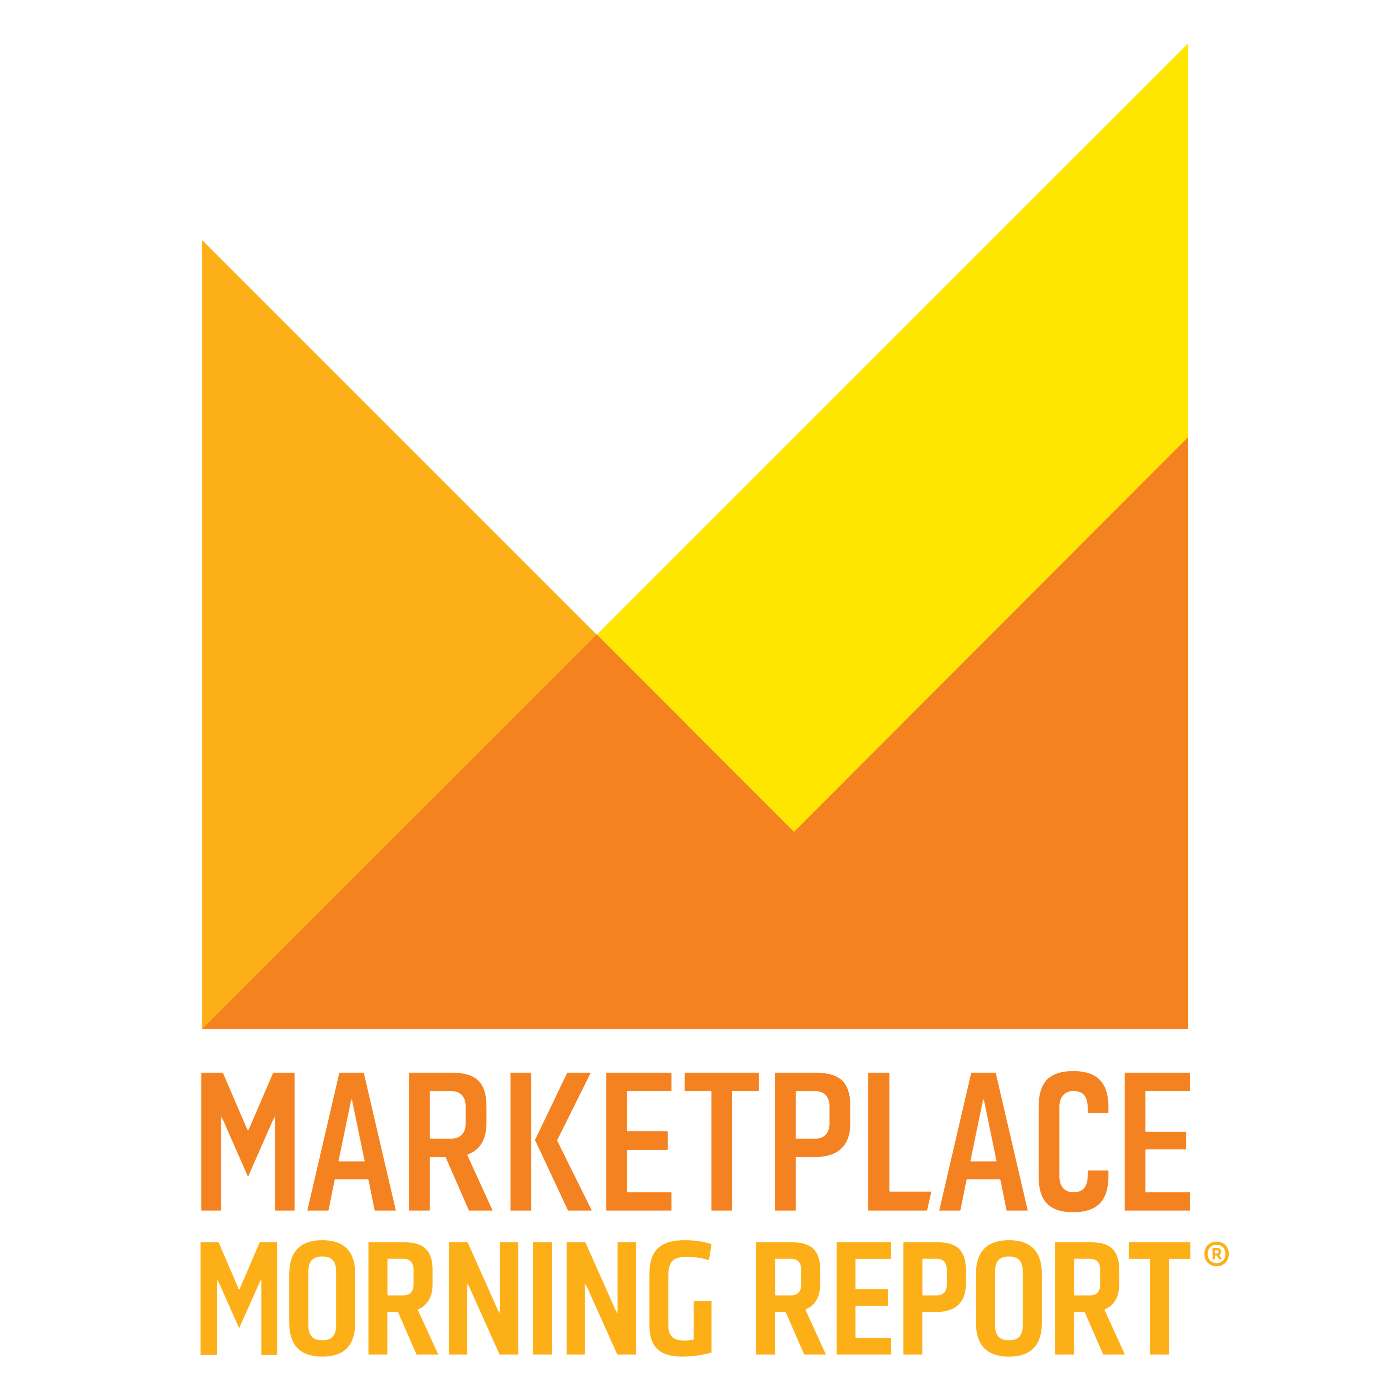 "Marketplace Morning Report hosted by David Brancaccio, is the business news you need to know to start your day. ""Marketplace Morning Report"" gets you up to speed on what you missed when you were sleeping, kicking off each weekday with a global business update from the BBC"